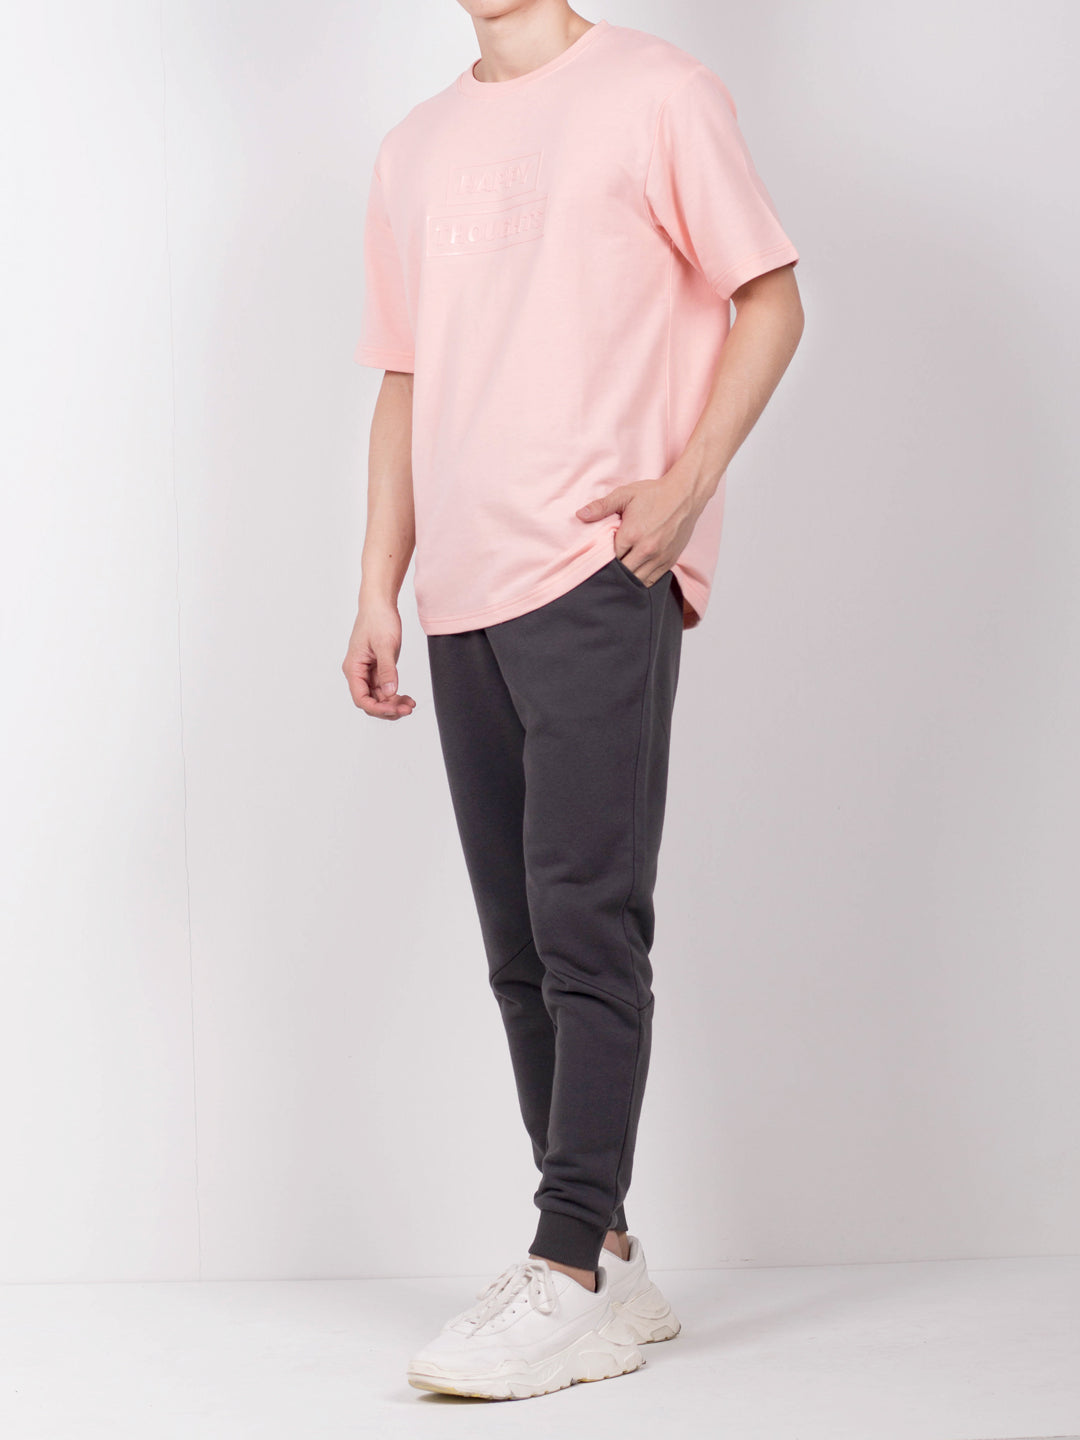 Men Oversize Fashion Short Sleeve Tee  - Pink